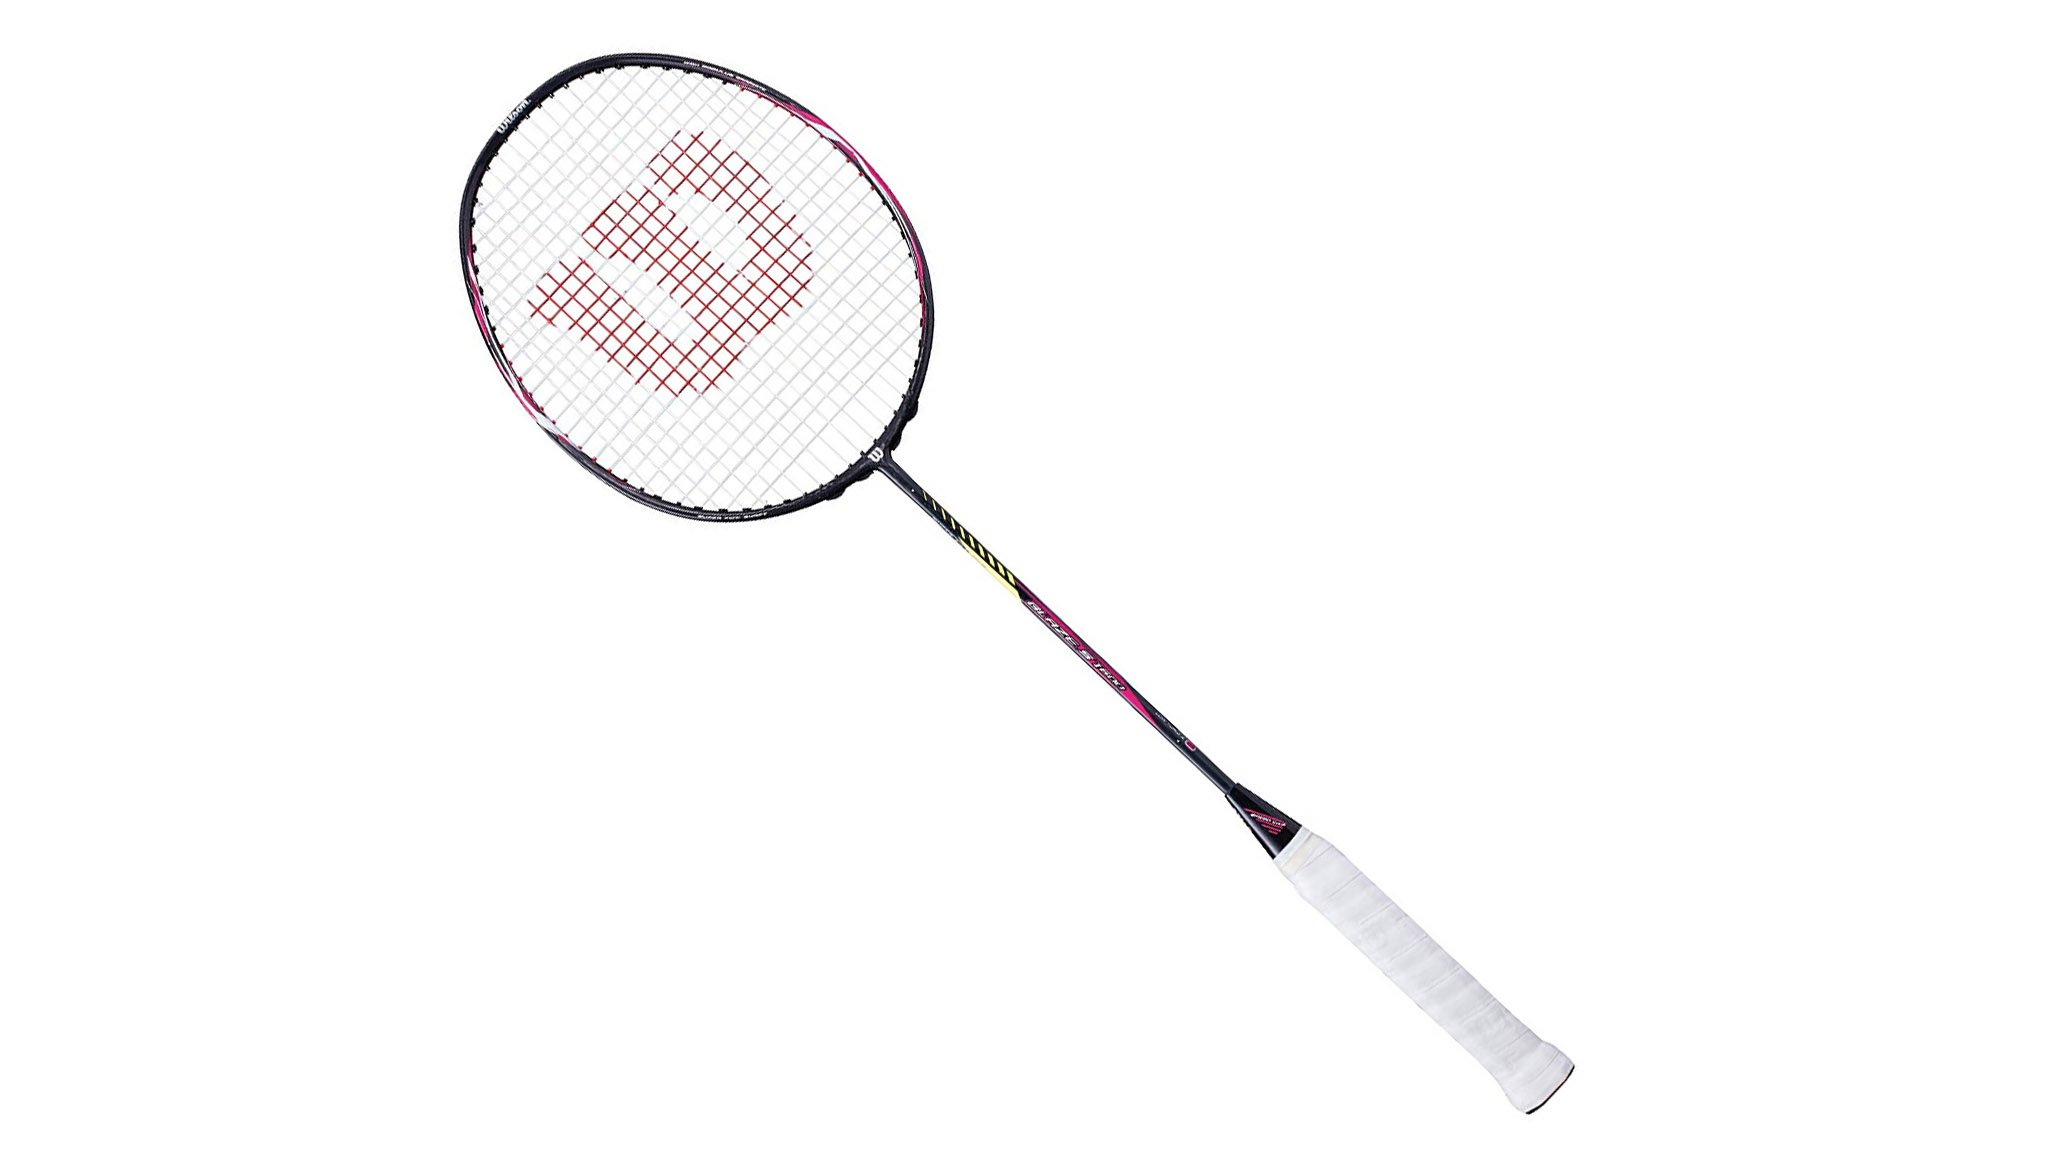 Best badminton racket 2018: Up your game with the perfect ...